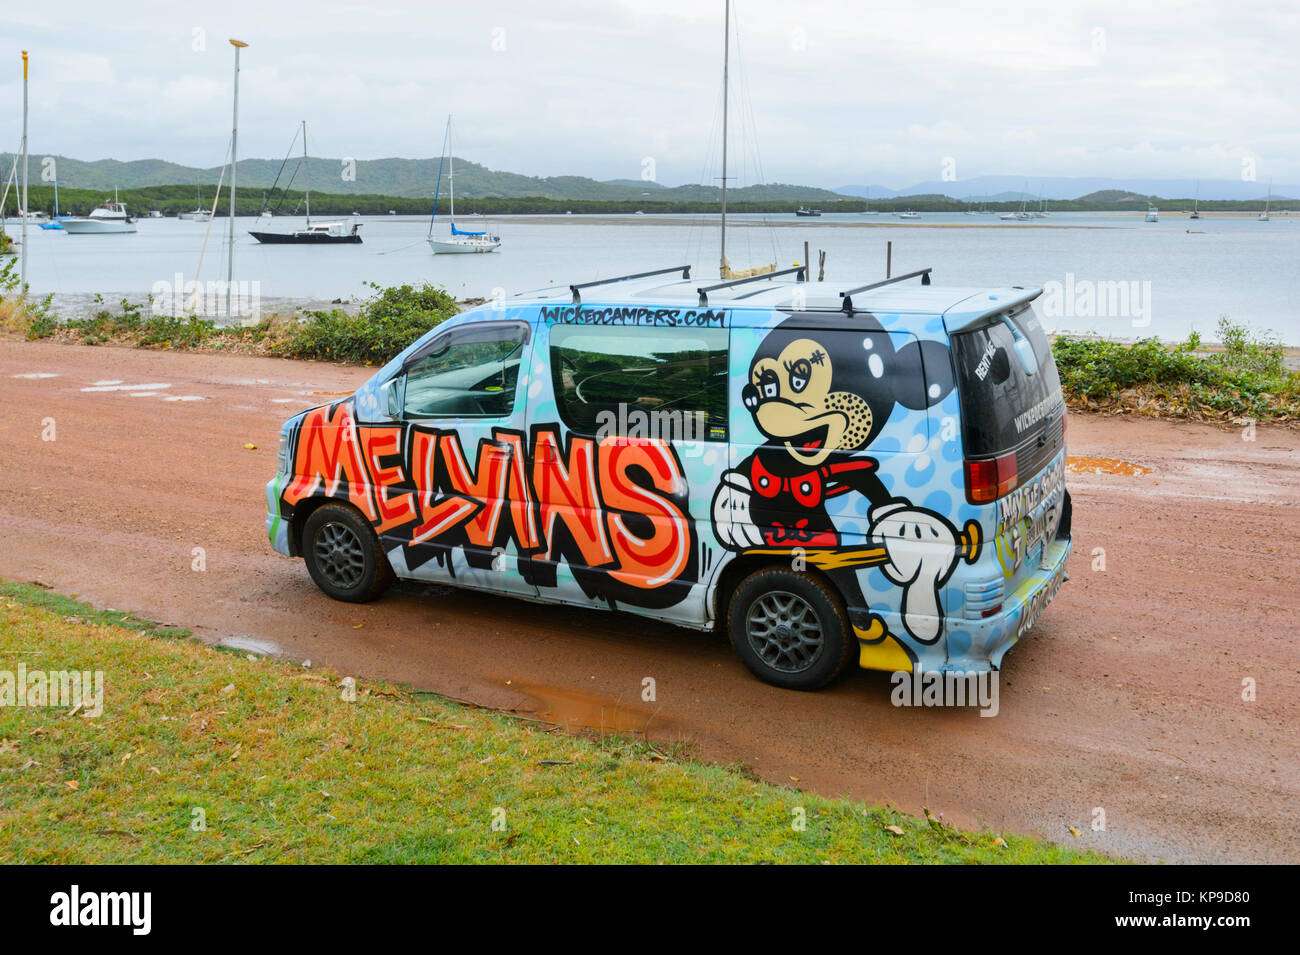 0f72570f4c Wicked Campers Stock Photos   Wicked Campers Stock Images - Alamy